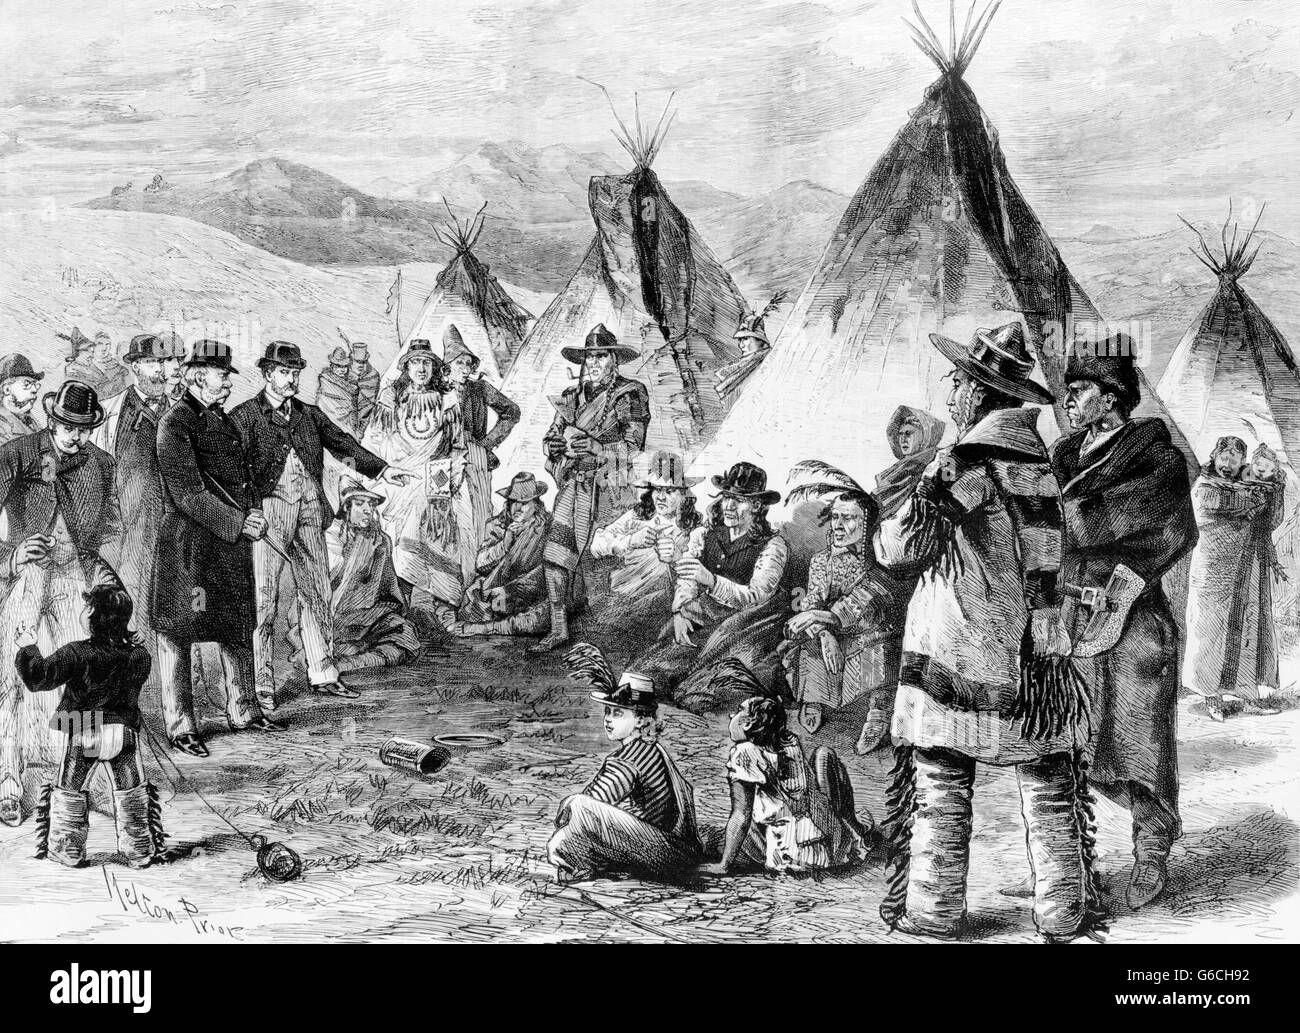 1890s US GOVERNMENT OFFICIALS MEETING WITH SIOUX & CHEYENNE WHO HAVE LEFT THEIR TERRITORY WITHOUT PERMISSION - Stock Image